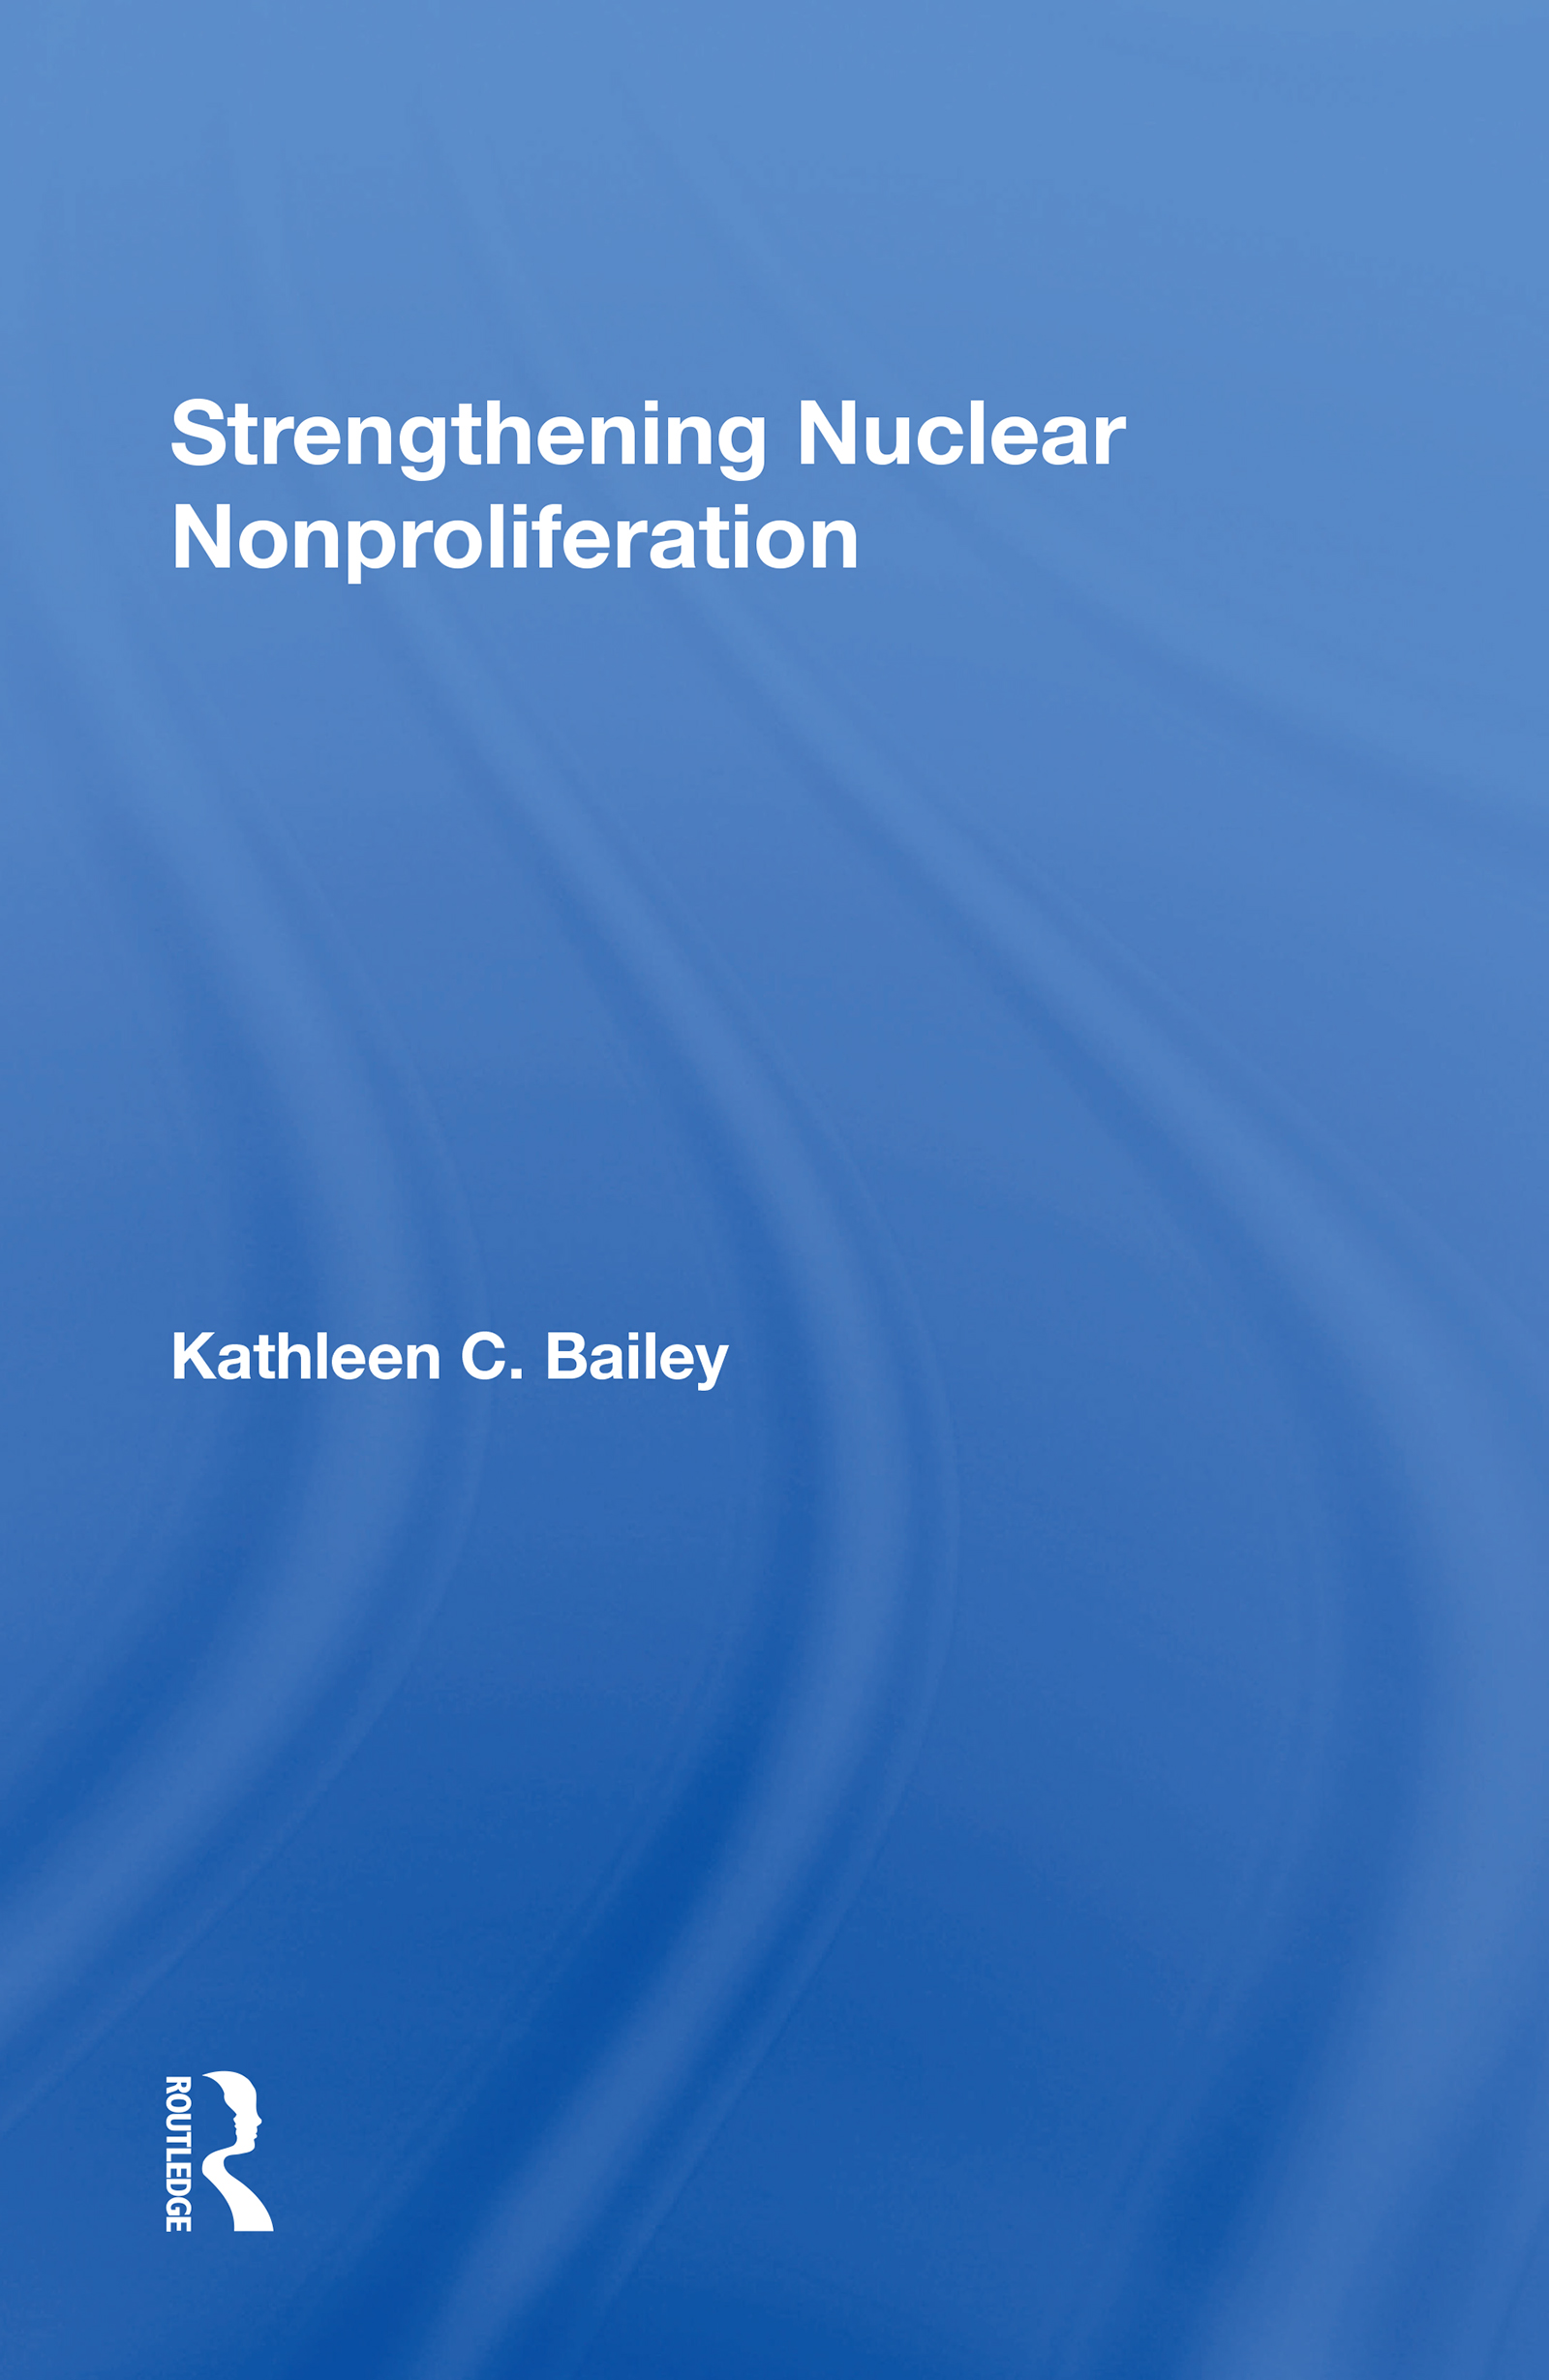 Strengthening Nuclear Nonproliferation